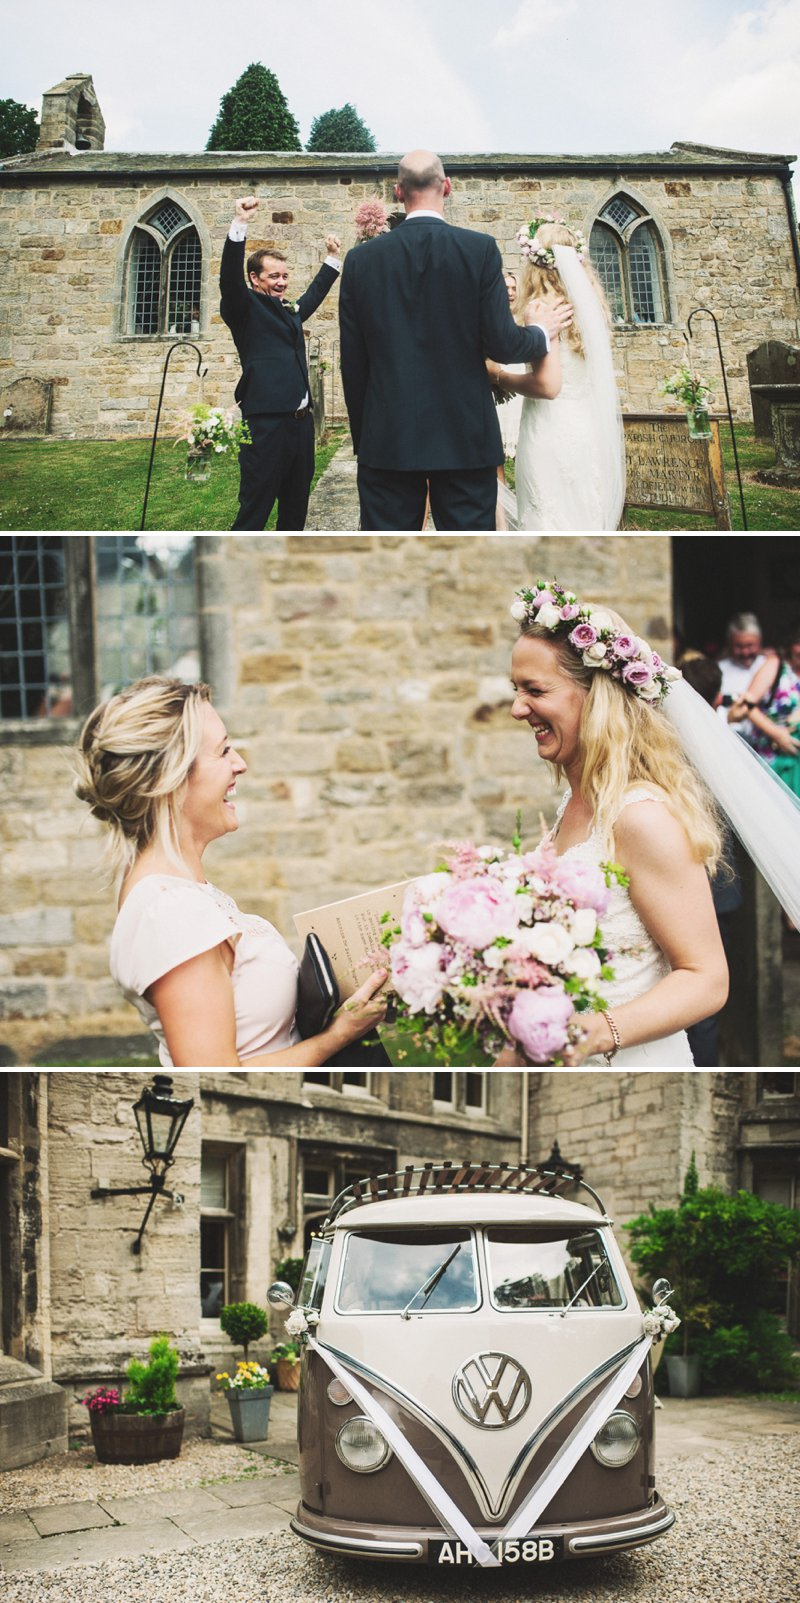 Rustic Marquee Wedding At Mallard Grange In Yorkshire With A Dusty Pink, Cream And Grey Colour Scheme With Bride In Gown From Eternity Bridal With A Vintage VW Camper Van 4